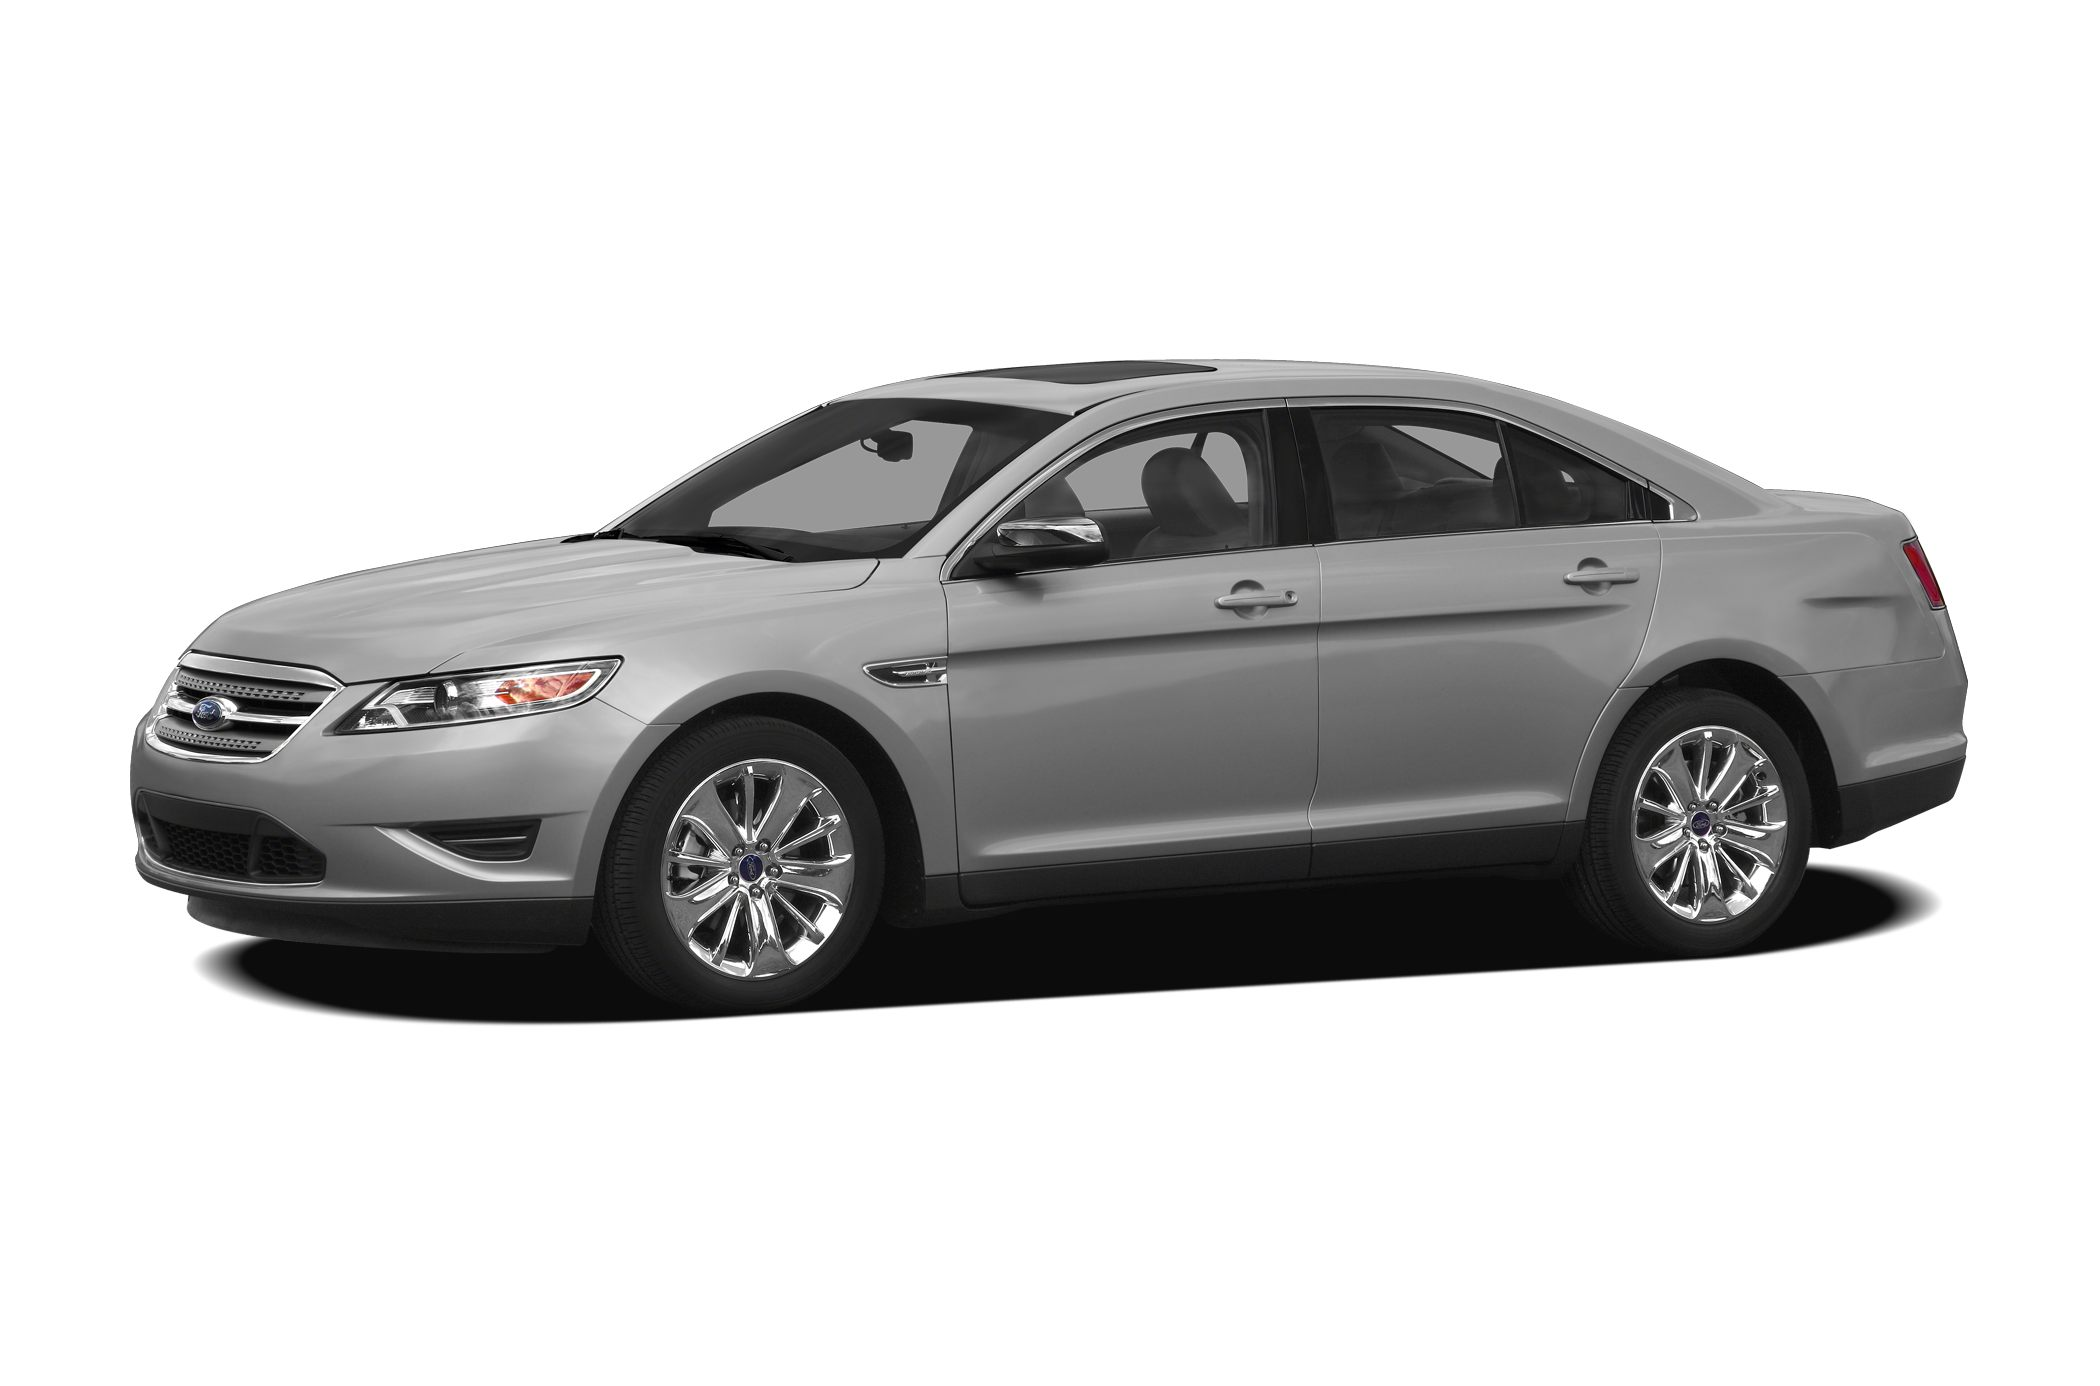 2012 Ford Taurus SE Sedan for sale in Hanover for $0 with 61,604 miles